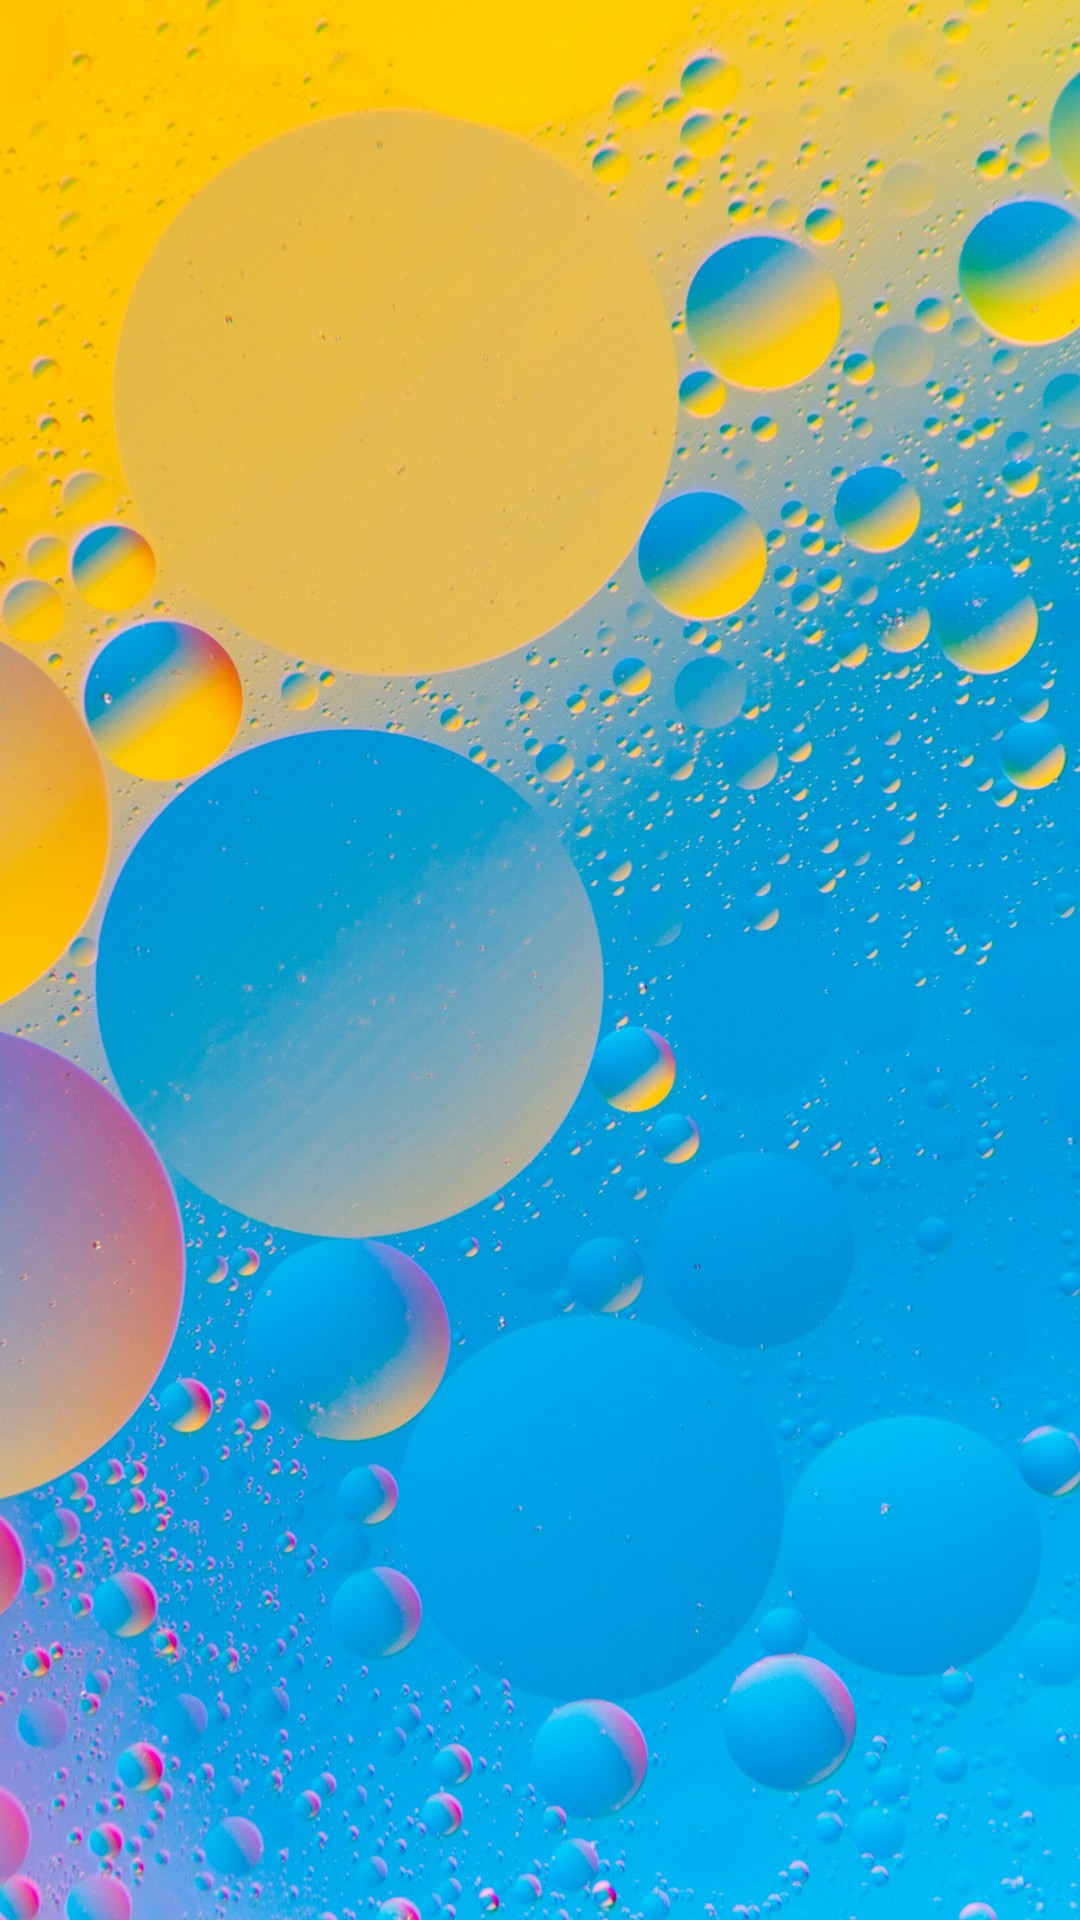 Free Download Colourful Bubbles 4k Hd Abstract Wallpaper Iphone 6